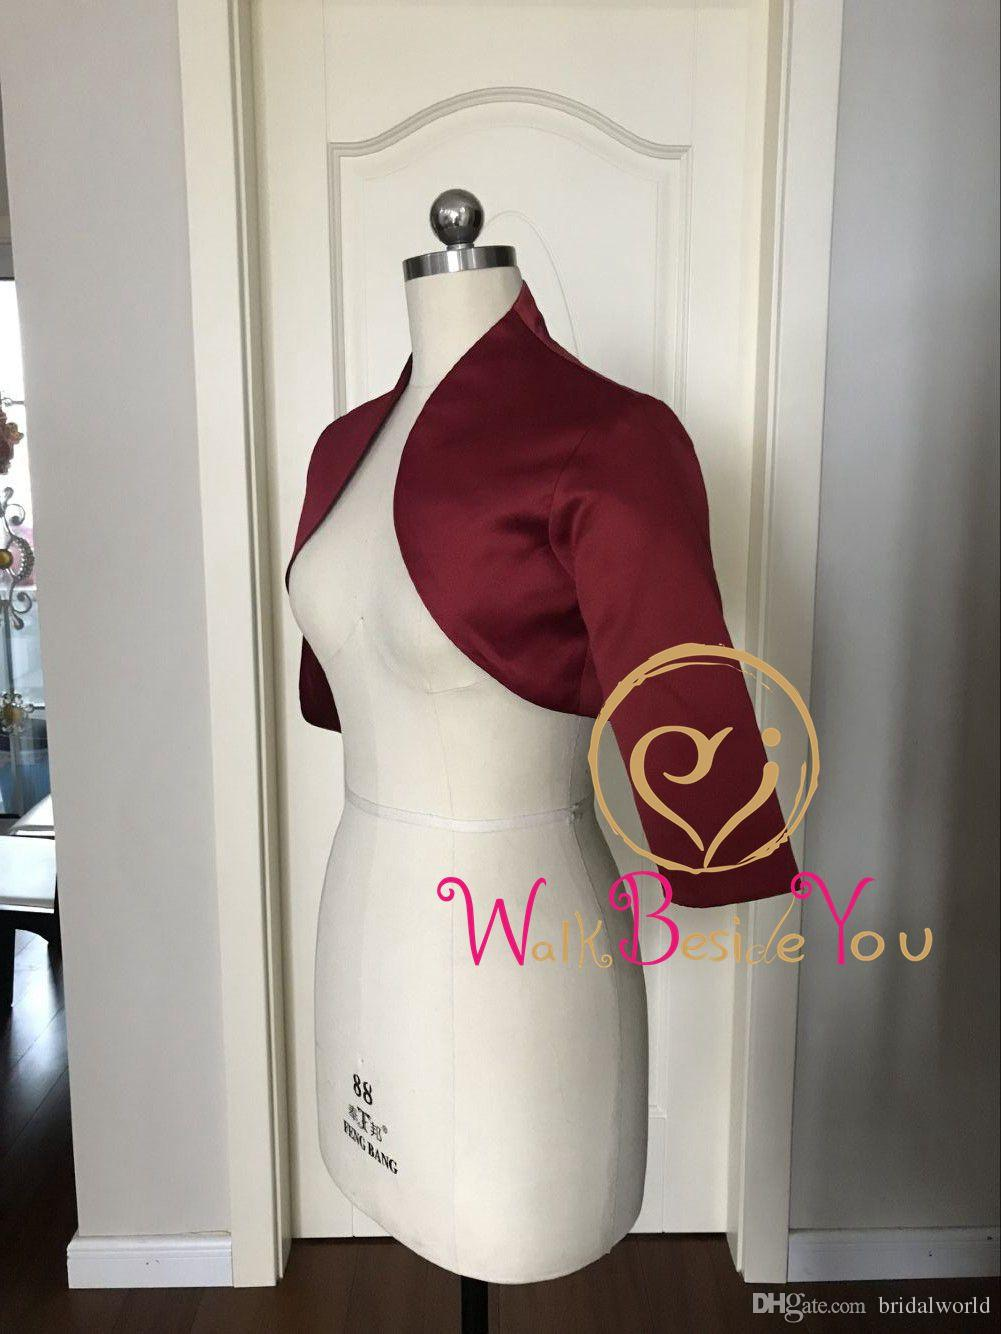 Walk Beside You Burgundy Wedding Jacket Evening Bolero Women Cape Mariage Satin Three Quarter Sleeves Party Wrap Shrug Custom